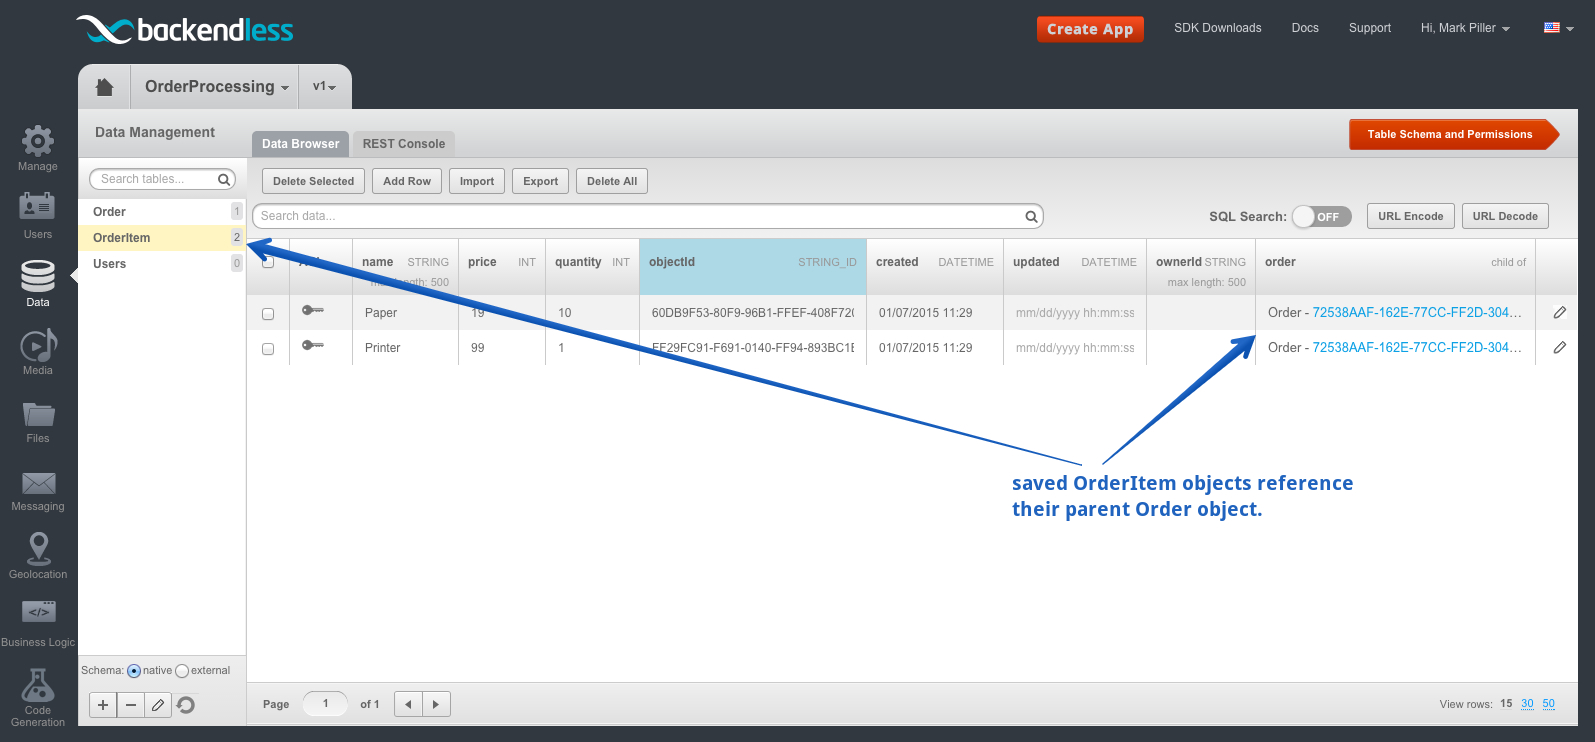 orderitem table - Feature 1: Saving Objects with Relations and Dynamic Schema Creation